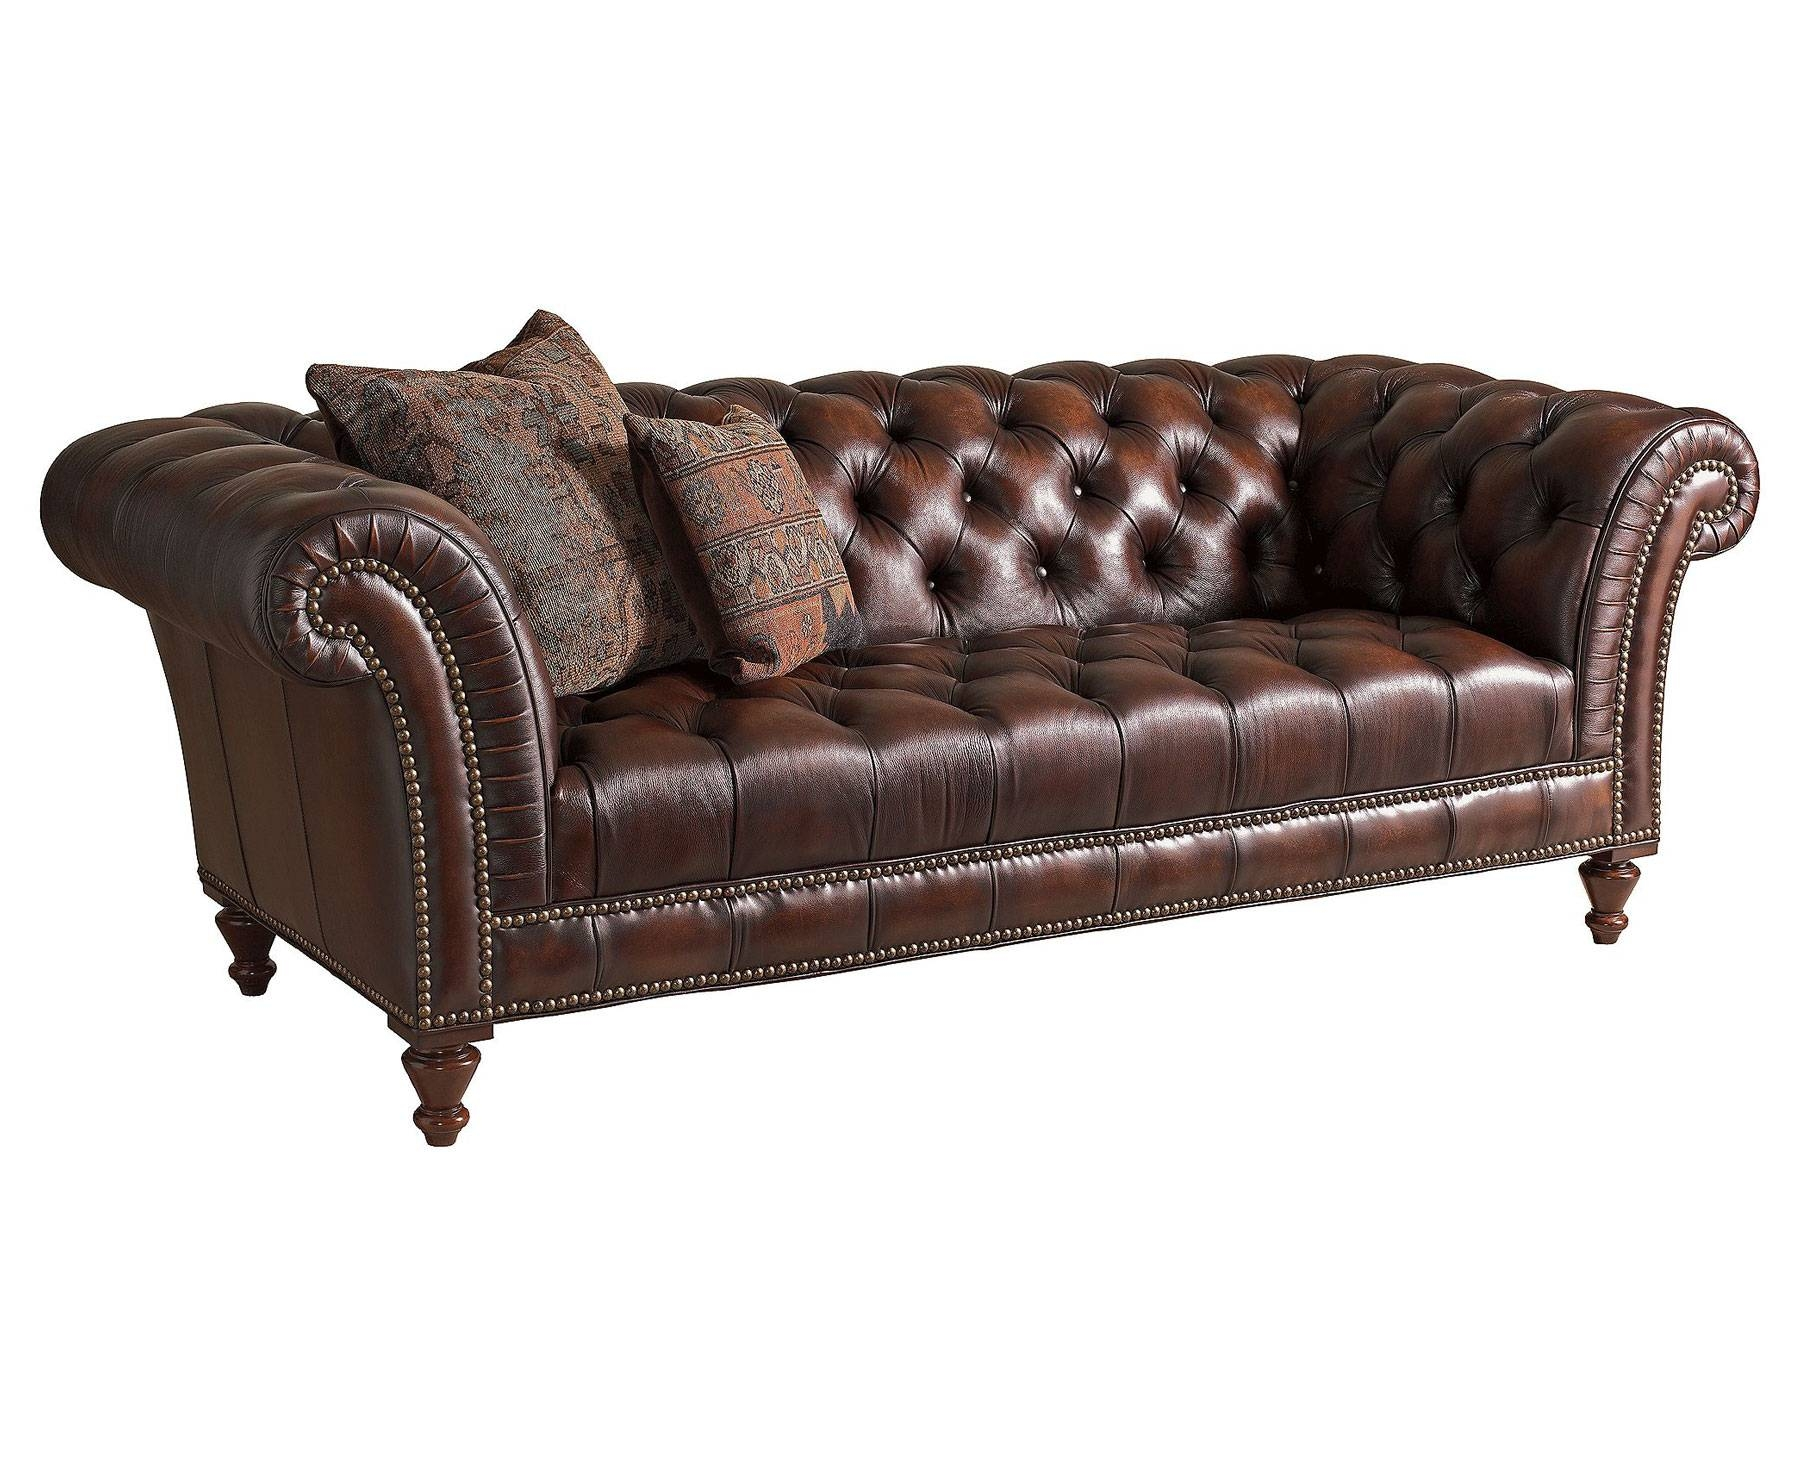 Dark Brown Modern Tufted Leather Sofa Set With Wooden Legs Pillow within Brown Leather Tufted Sofas (Image 5 of 15)